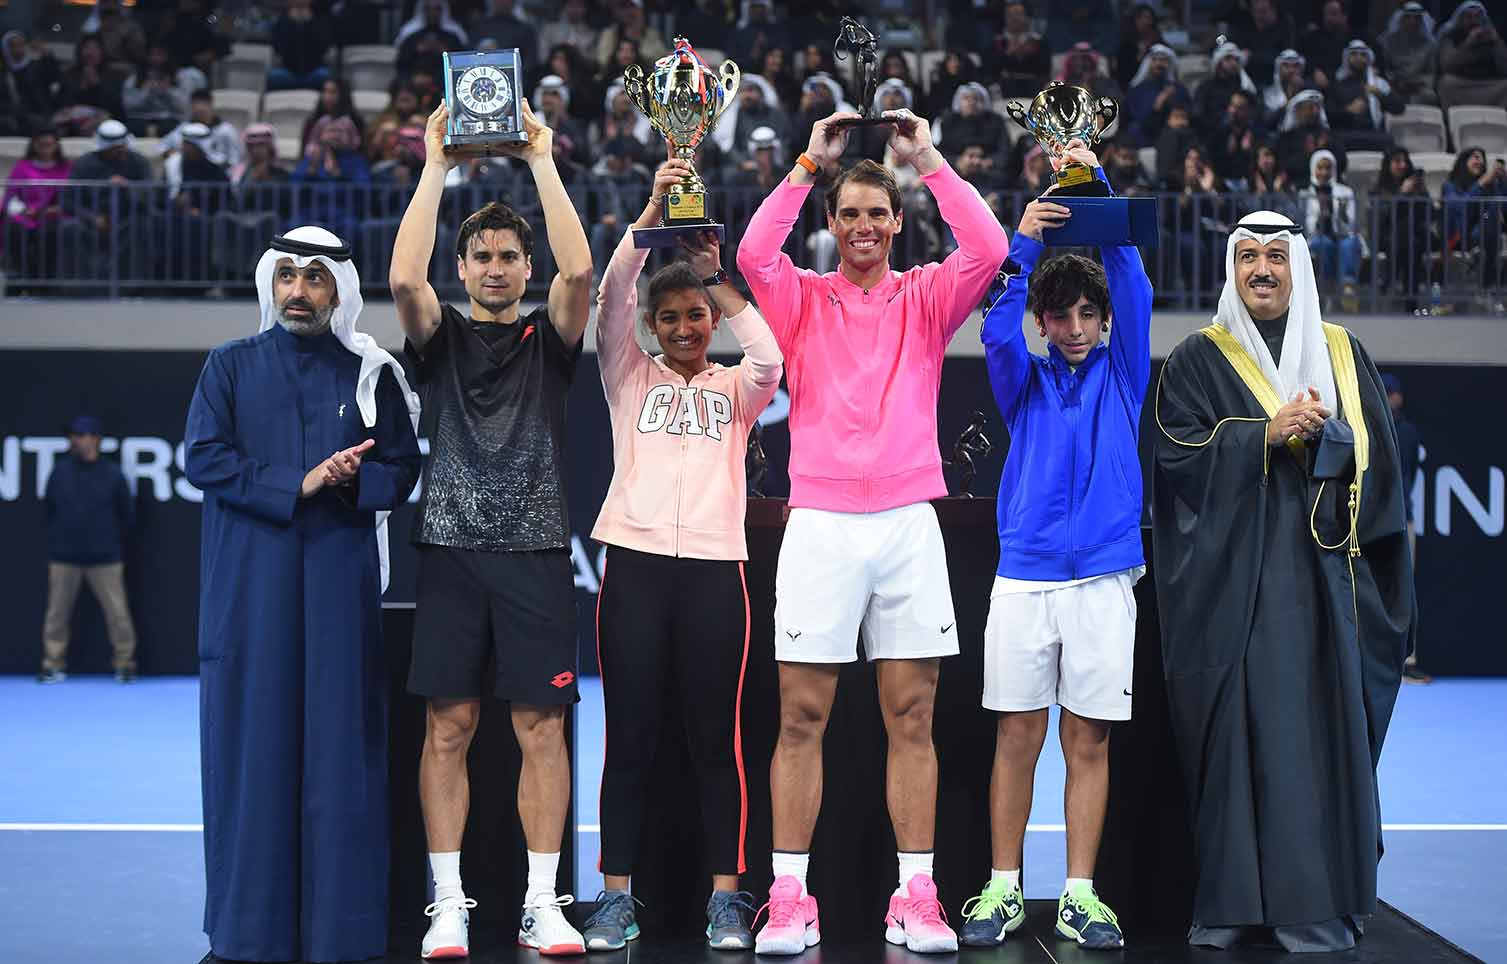 Rafa Nadal And David Ferrer Officially Open The Rafa Nadal Academy Kuwait